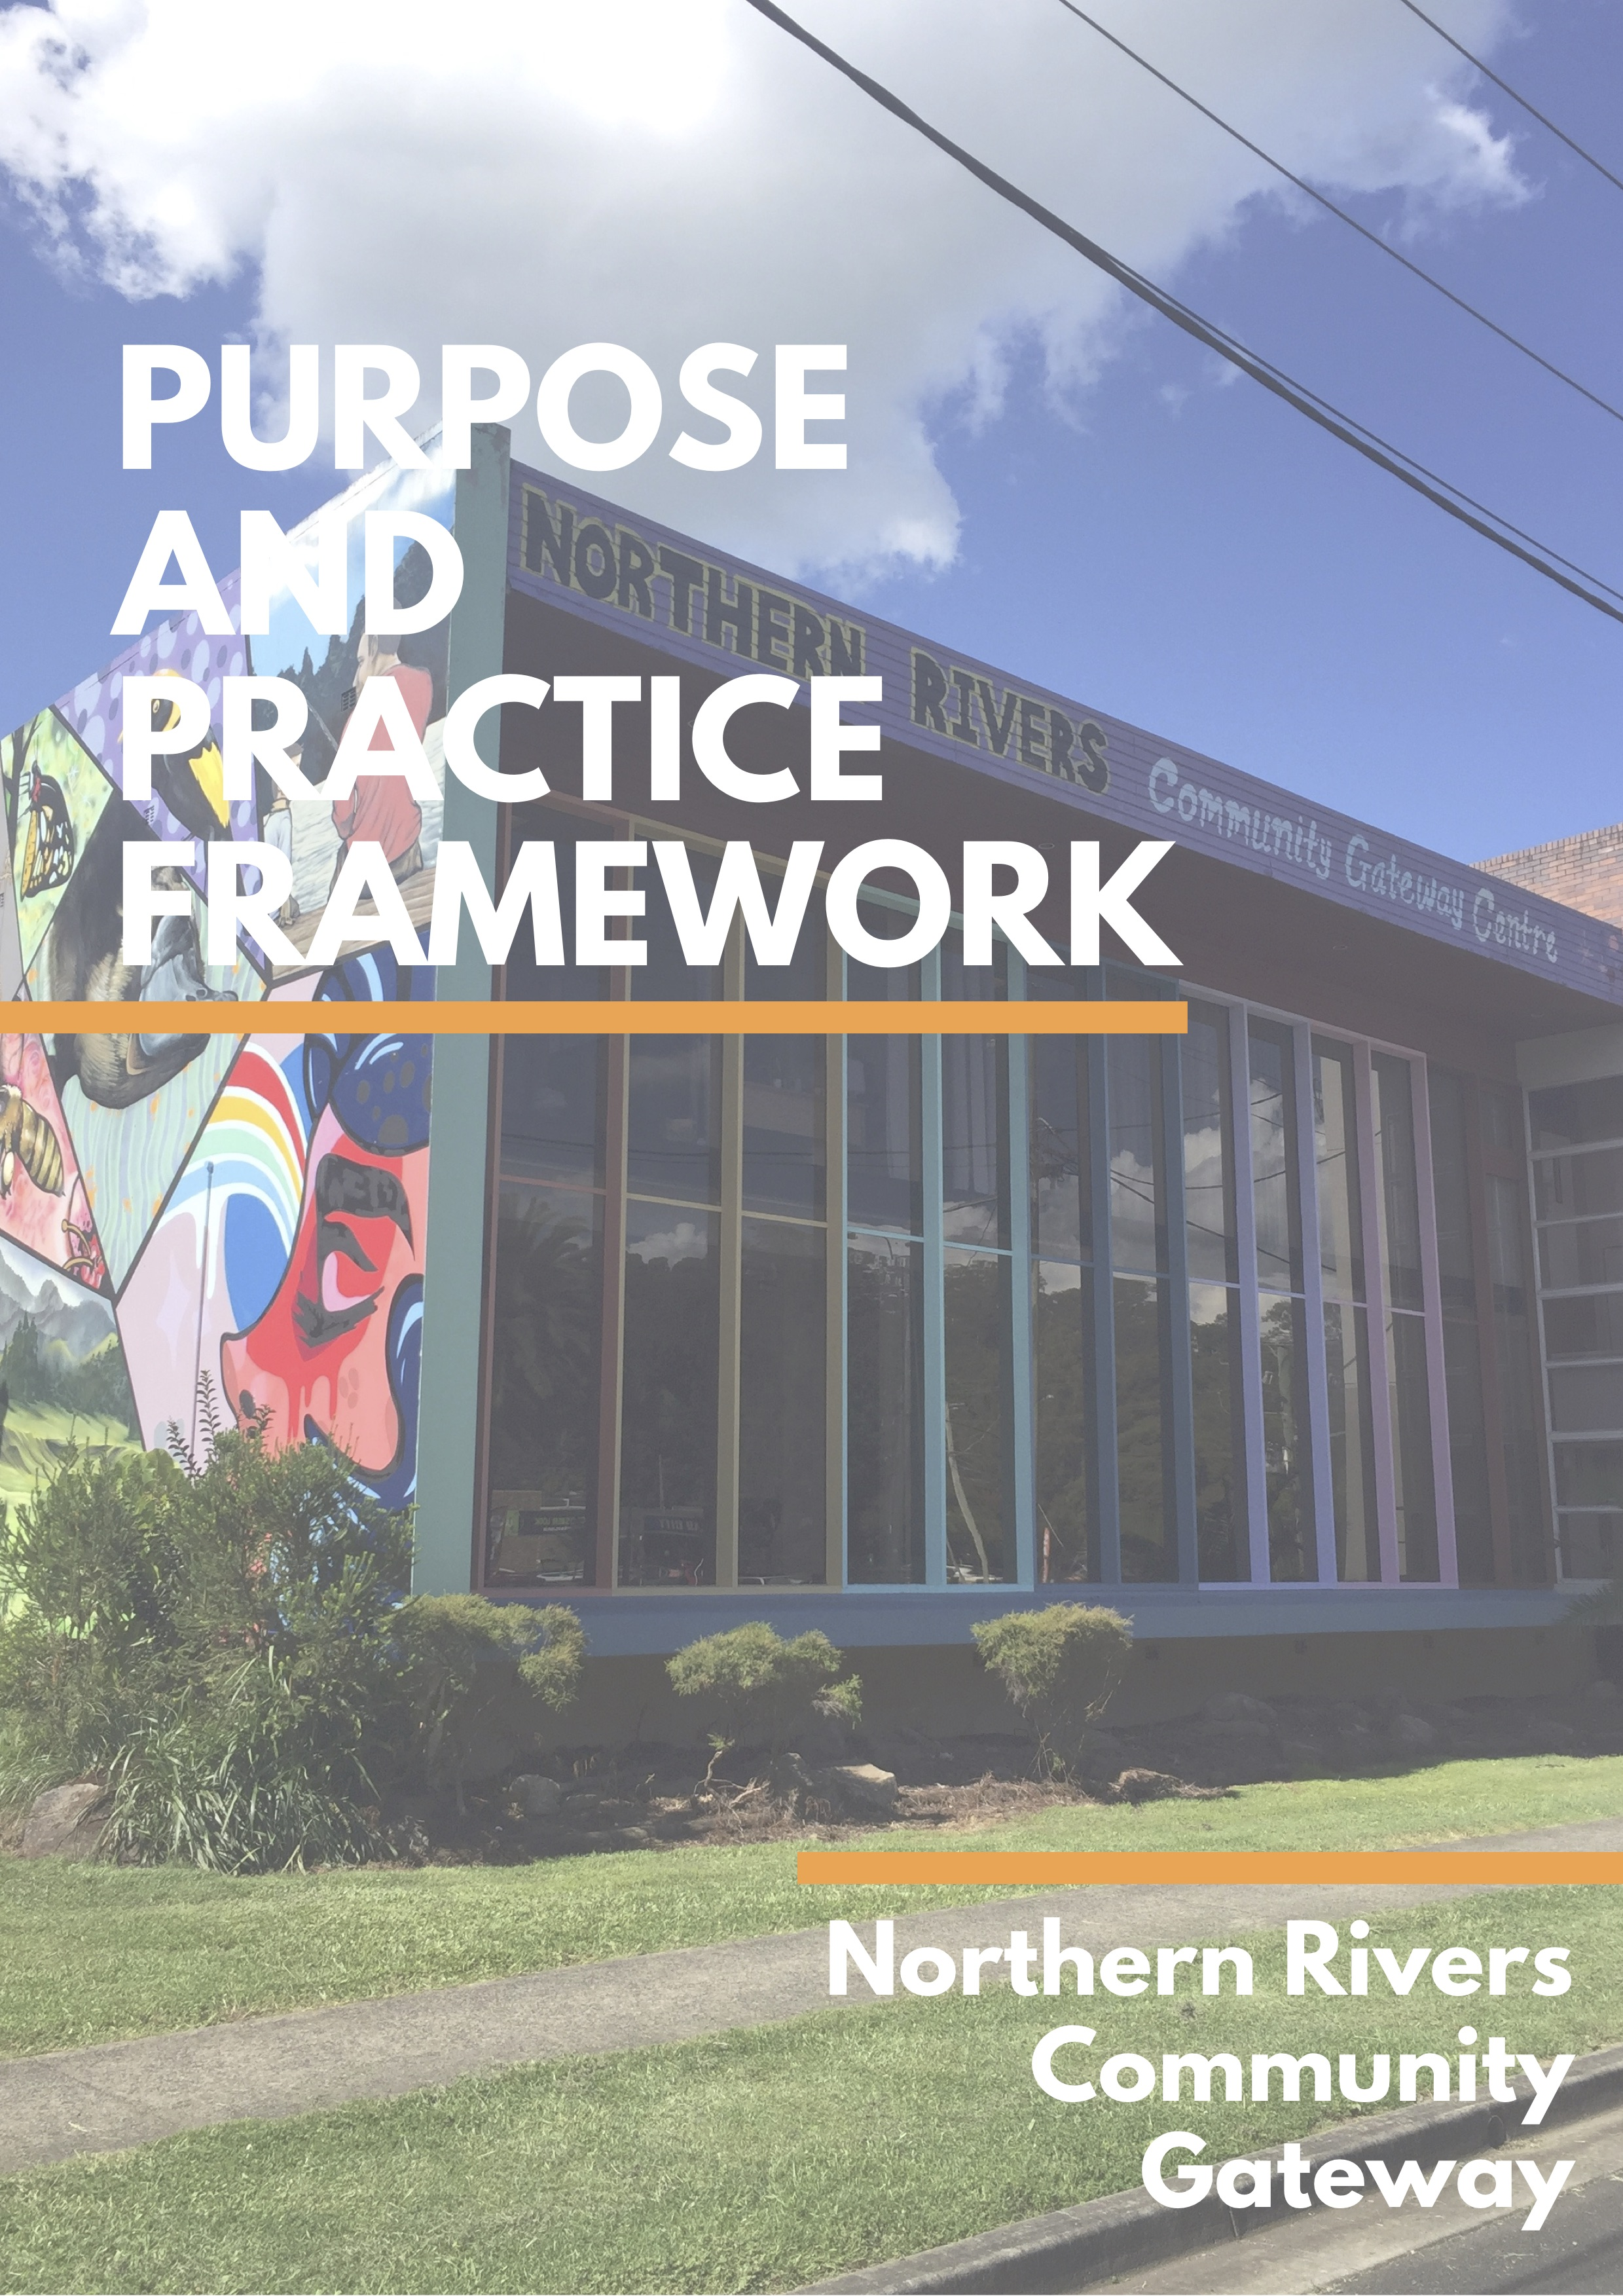 NRCG-Purpose-and-Practice-Framework-FINAL-v1.0 (1).jpg